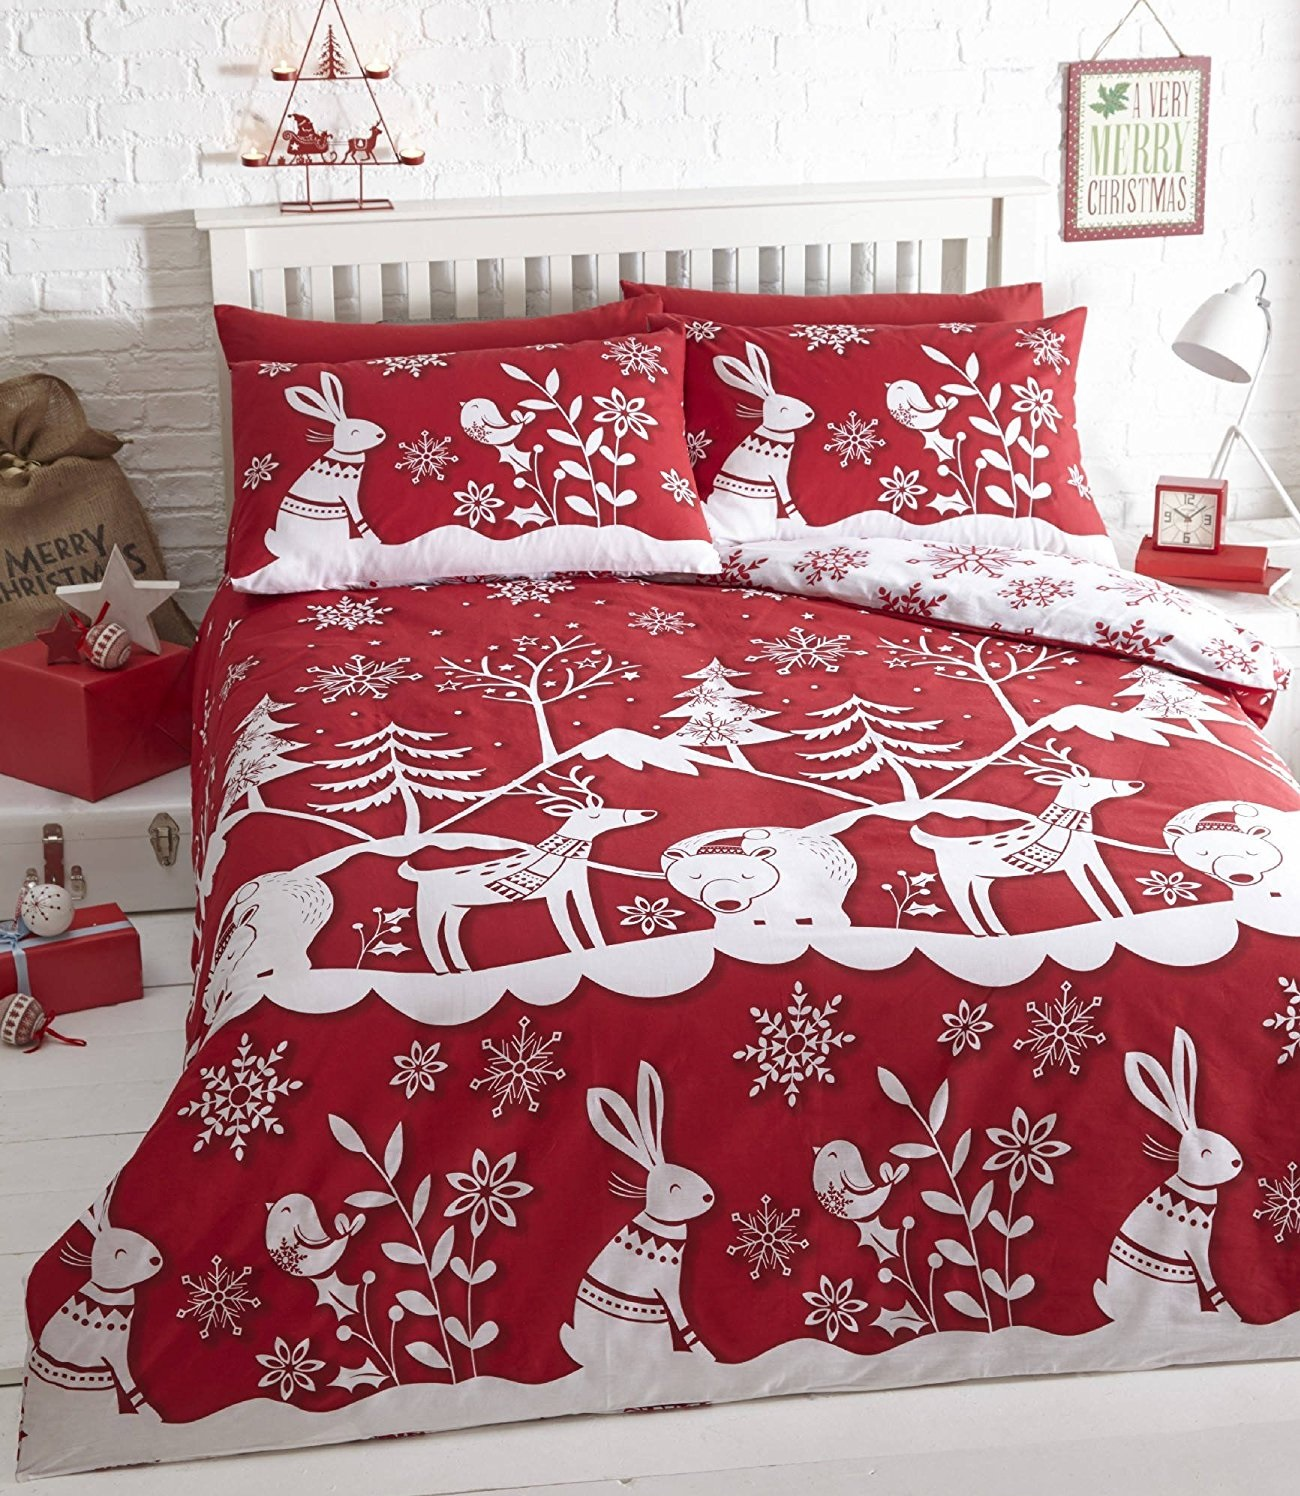 ebay uk christmas chair covers foot pads father duvet cover set tree santa snowman angels